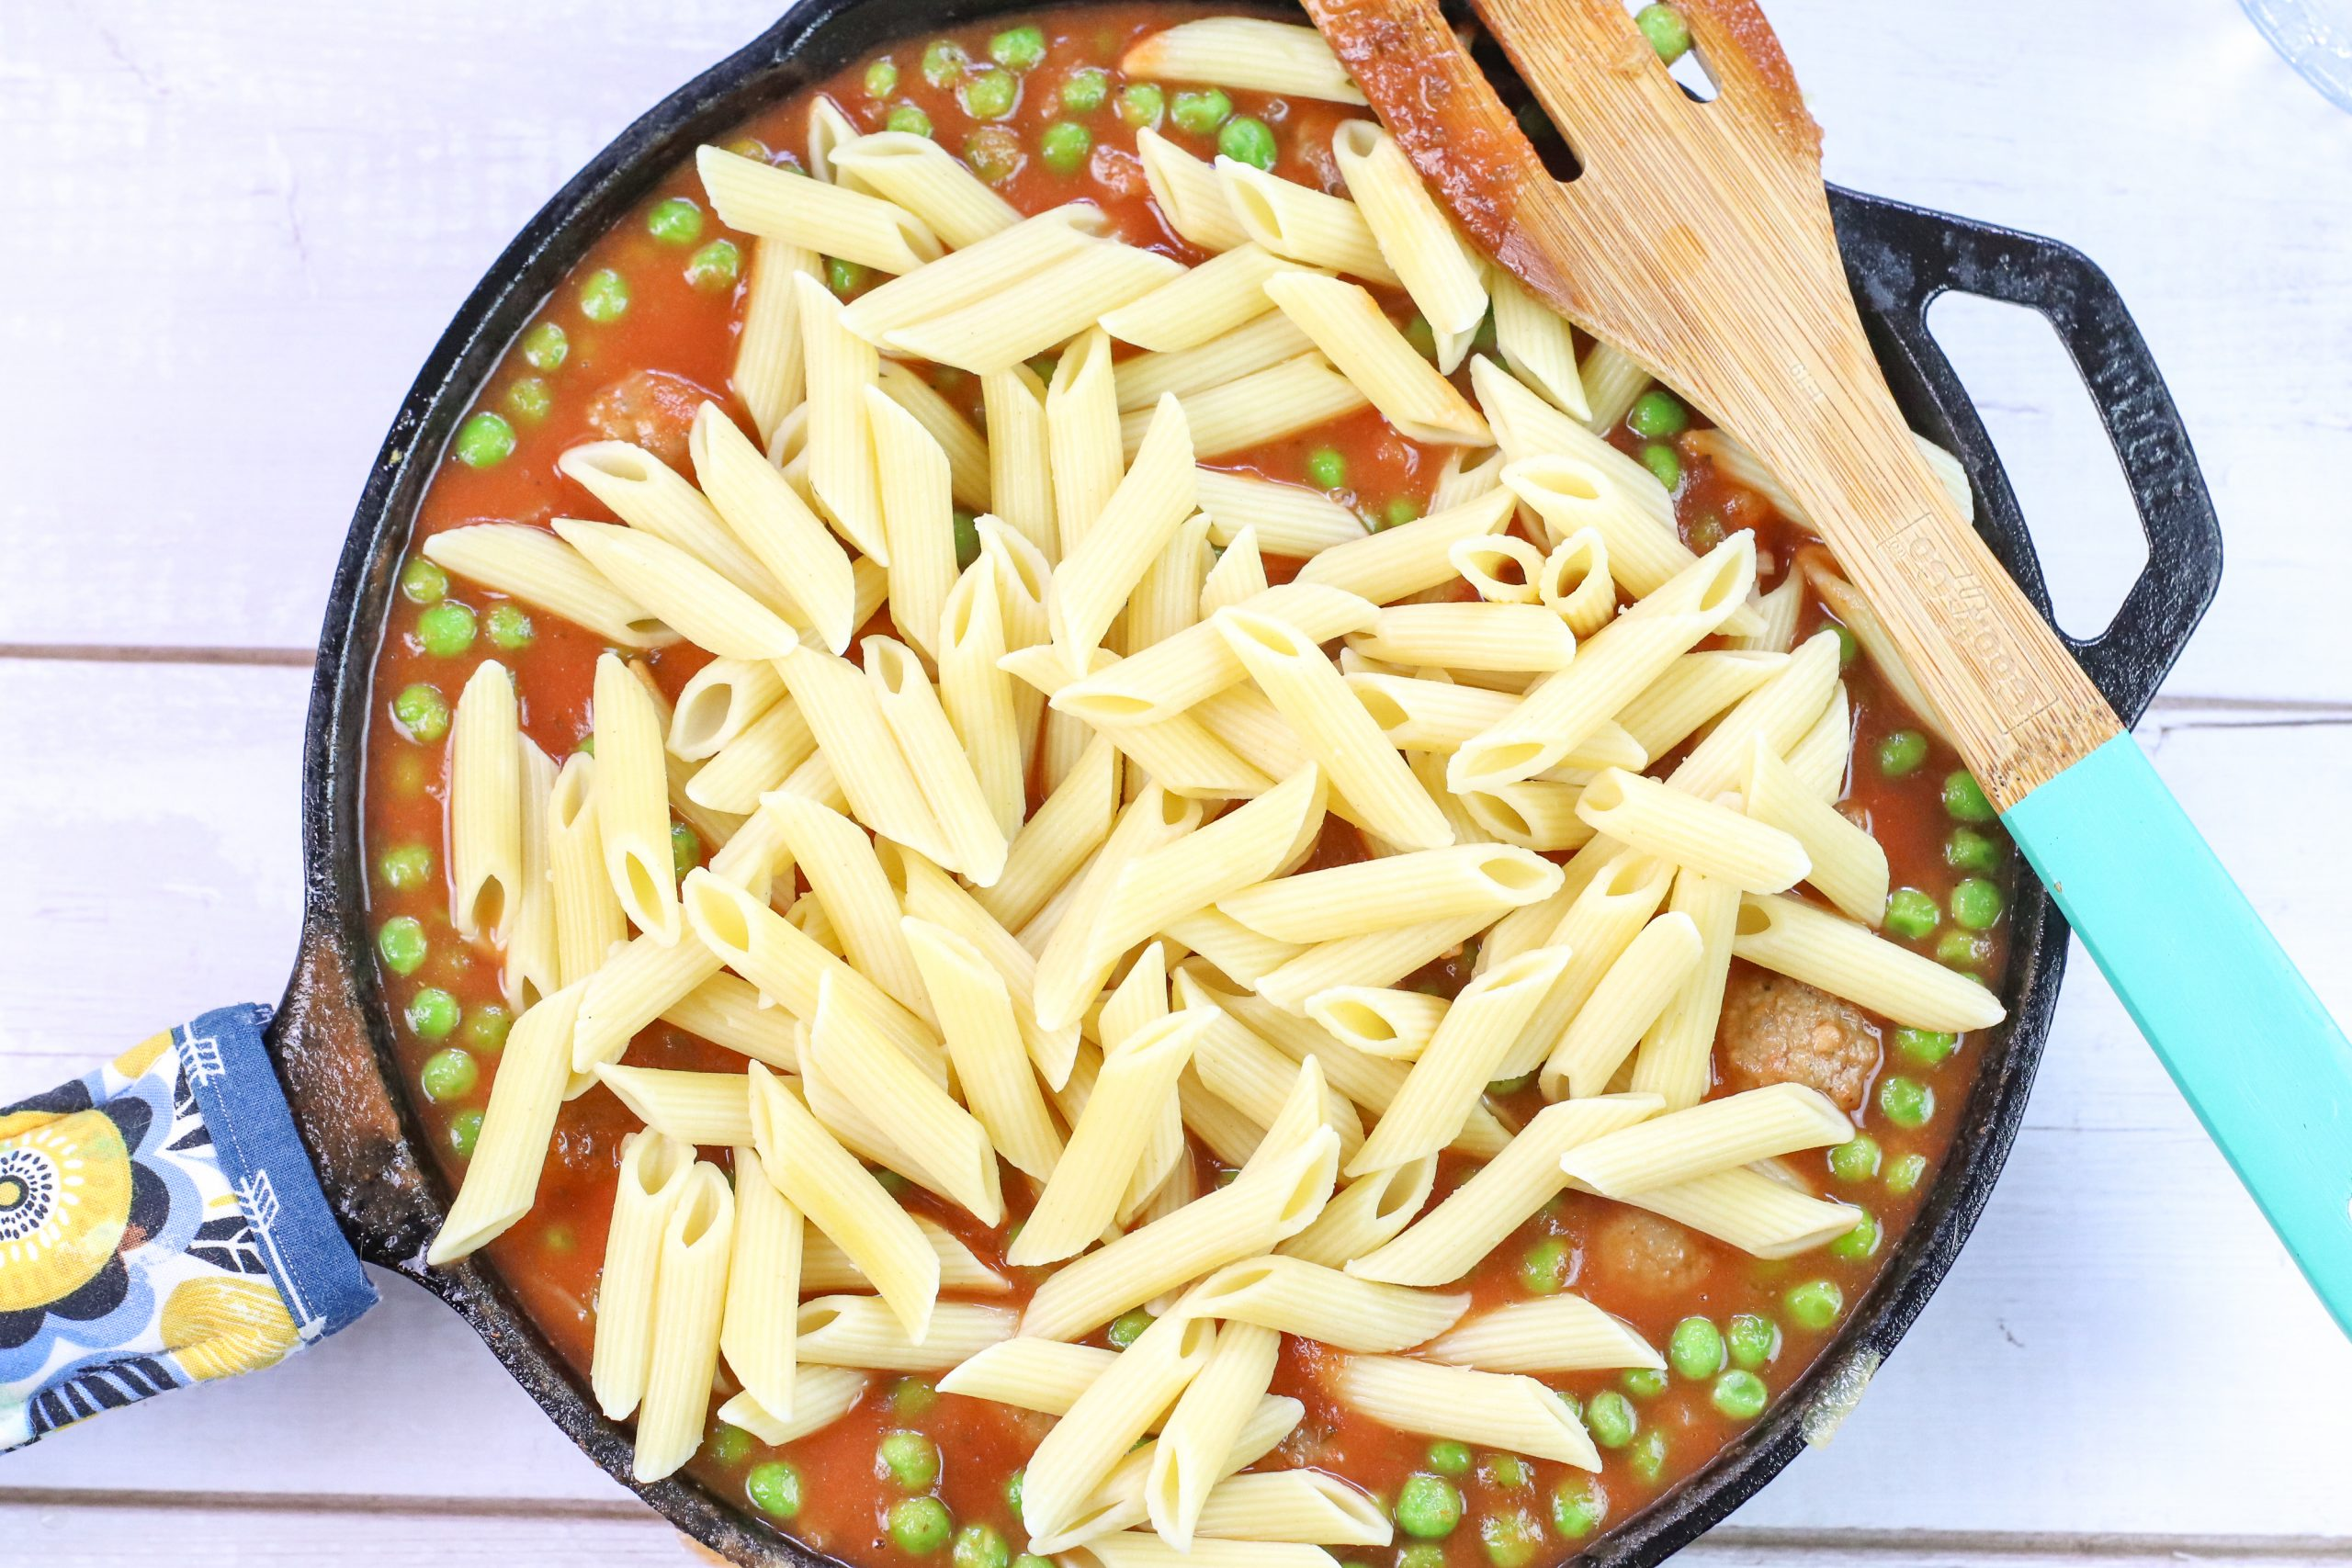 pasta in the skillet with other ingredients